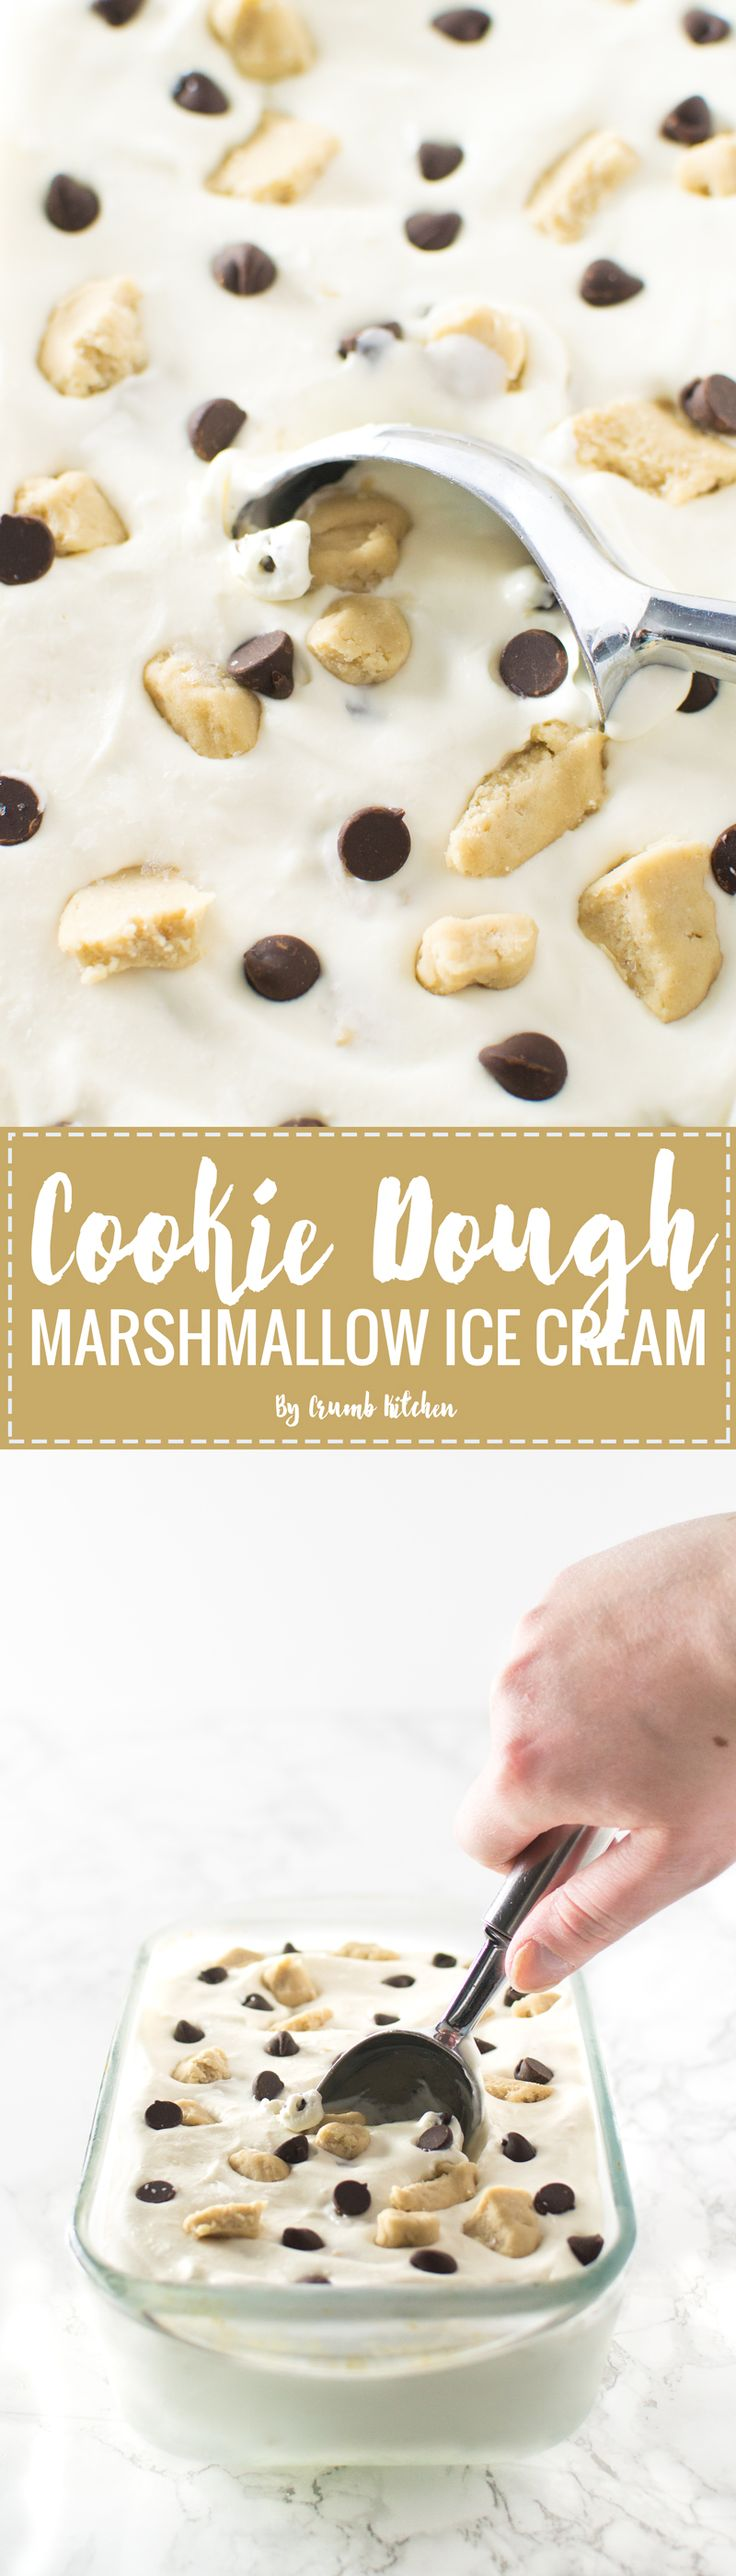 This No-Churn Marshmallow Cookie Dough Ice Cream combines creamy vanilla ice cream with chocolate chips and homemade chunks of cookie dough. | Crumb Kitchen